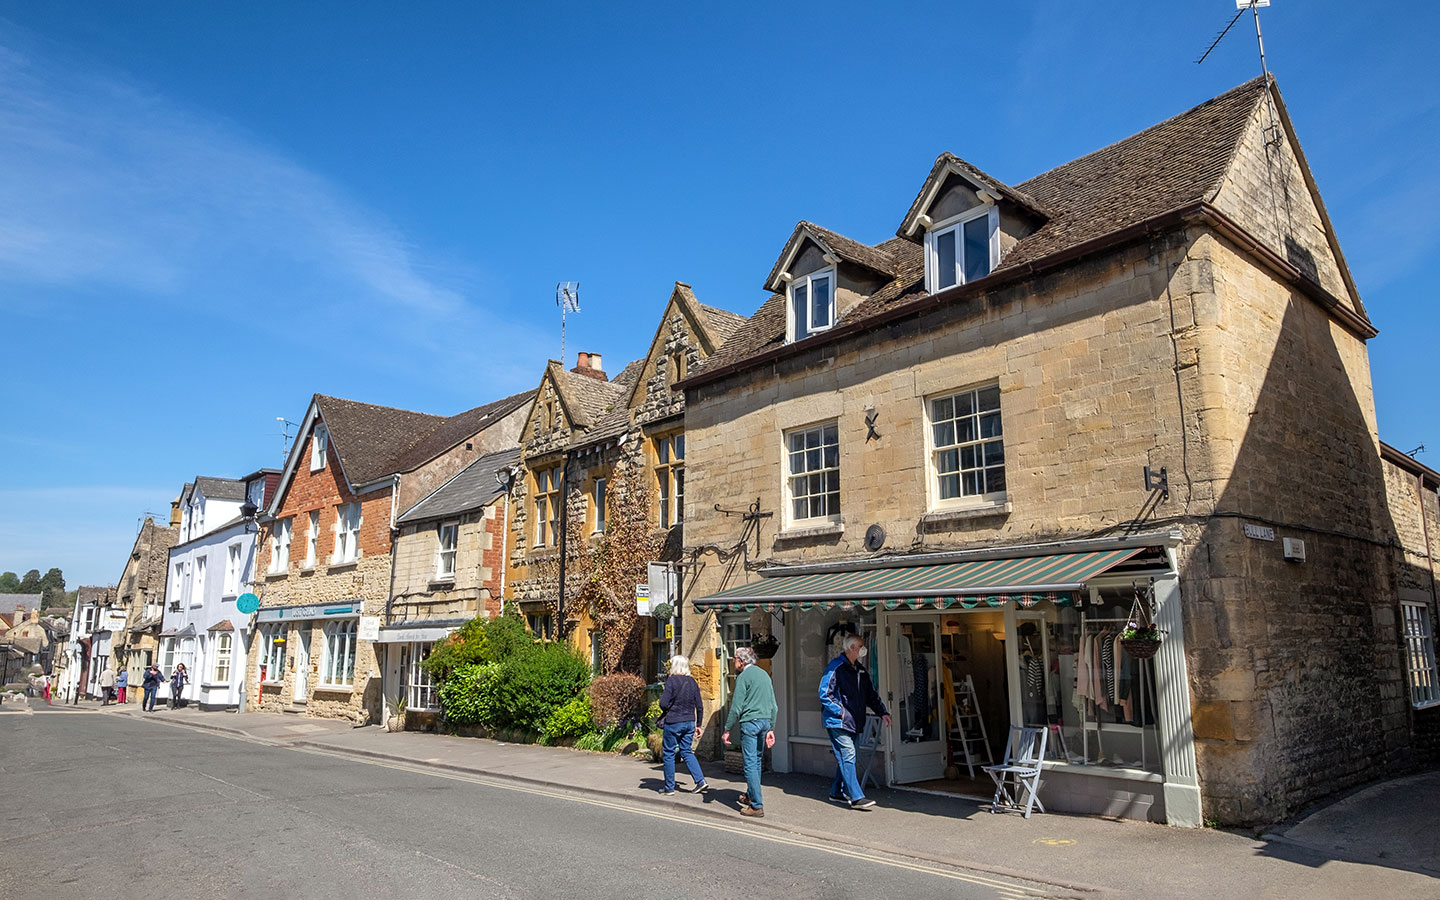 Shops on Hailes Street in Winchcombe